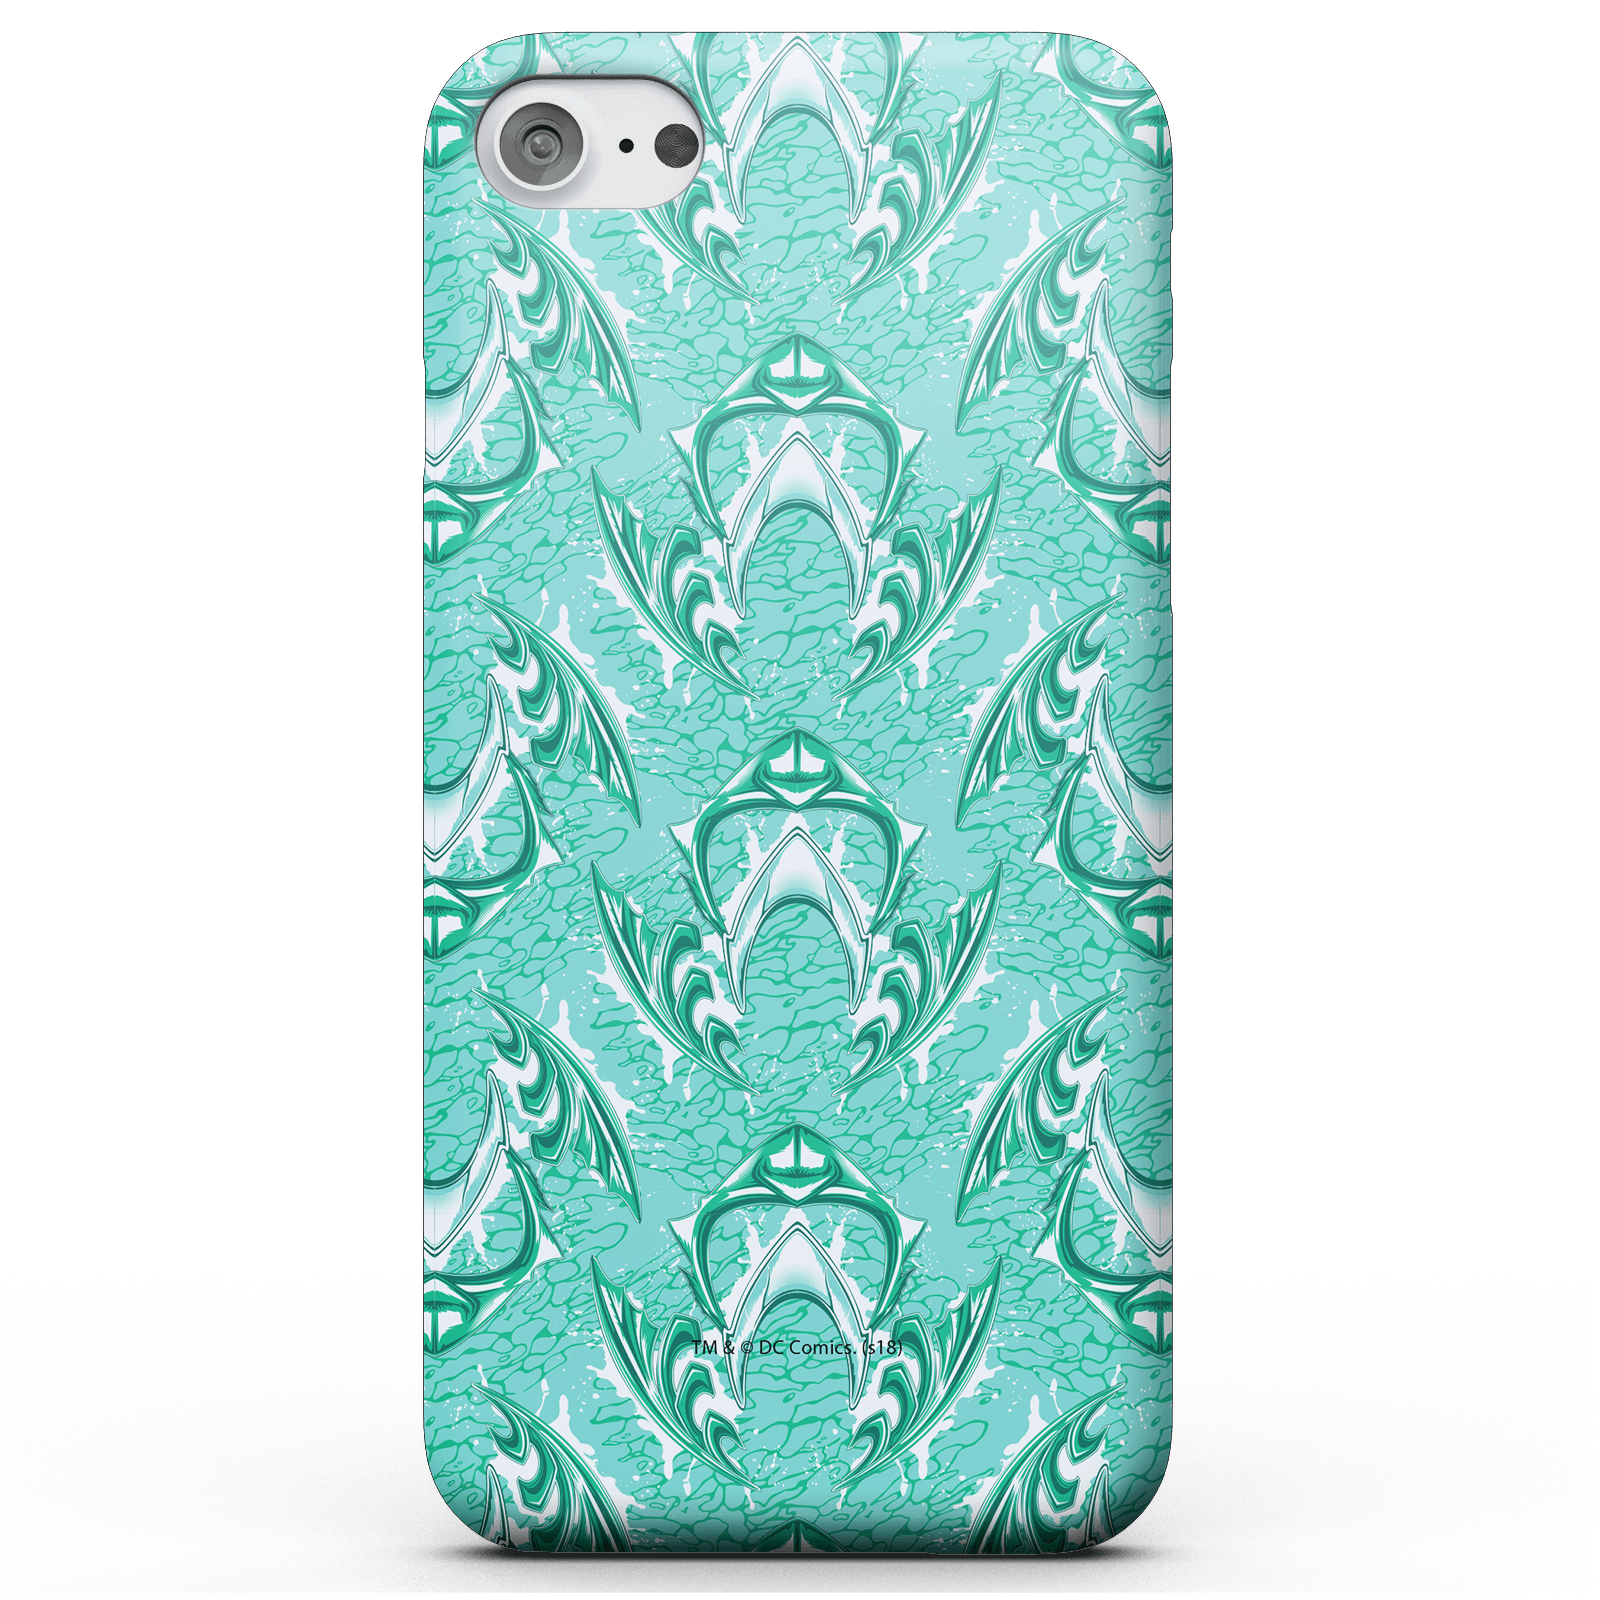 Funda Móvil DC Comics Aquaman Mera para iPhone y Android - iPhone 8 - Carcasa doble capa - Brillante de DC Comics